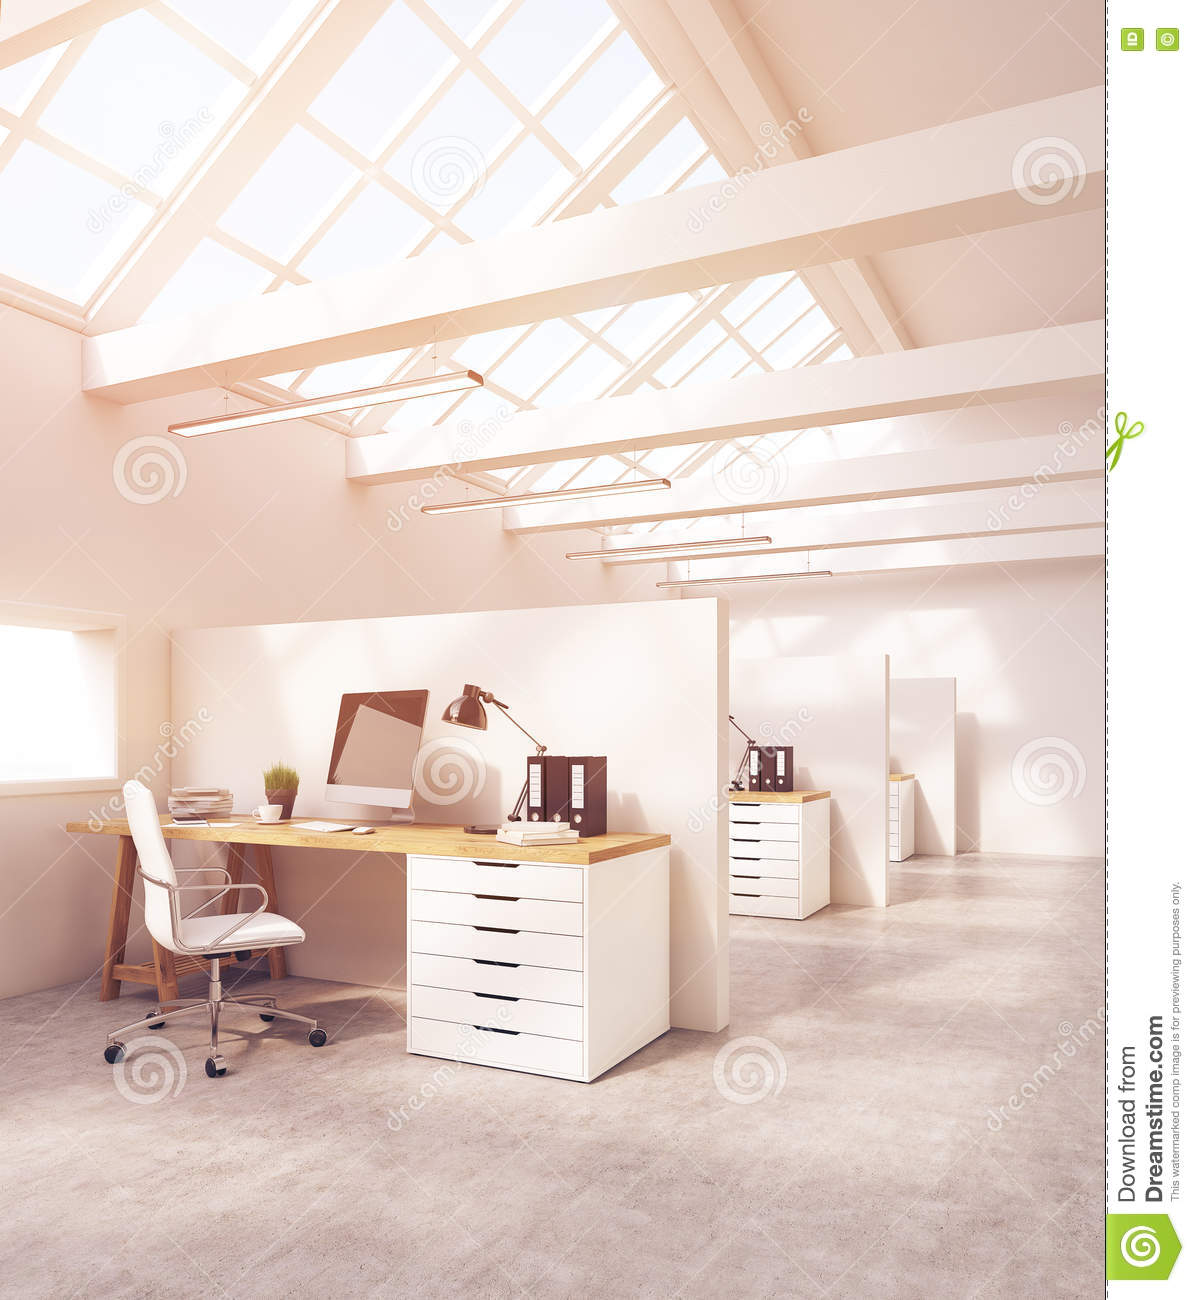 Office Cubicles In Room With Concrete Floor Stock Illustration